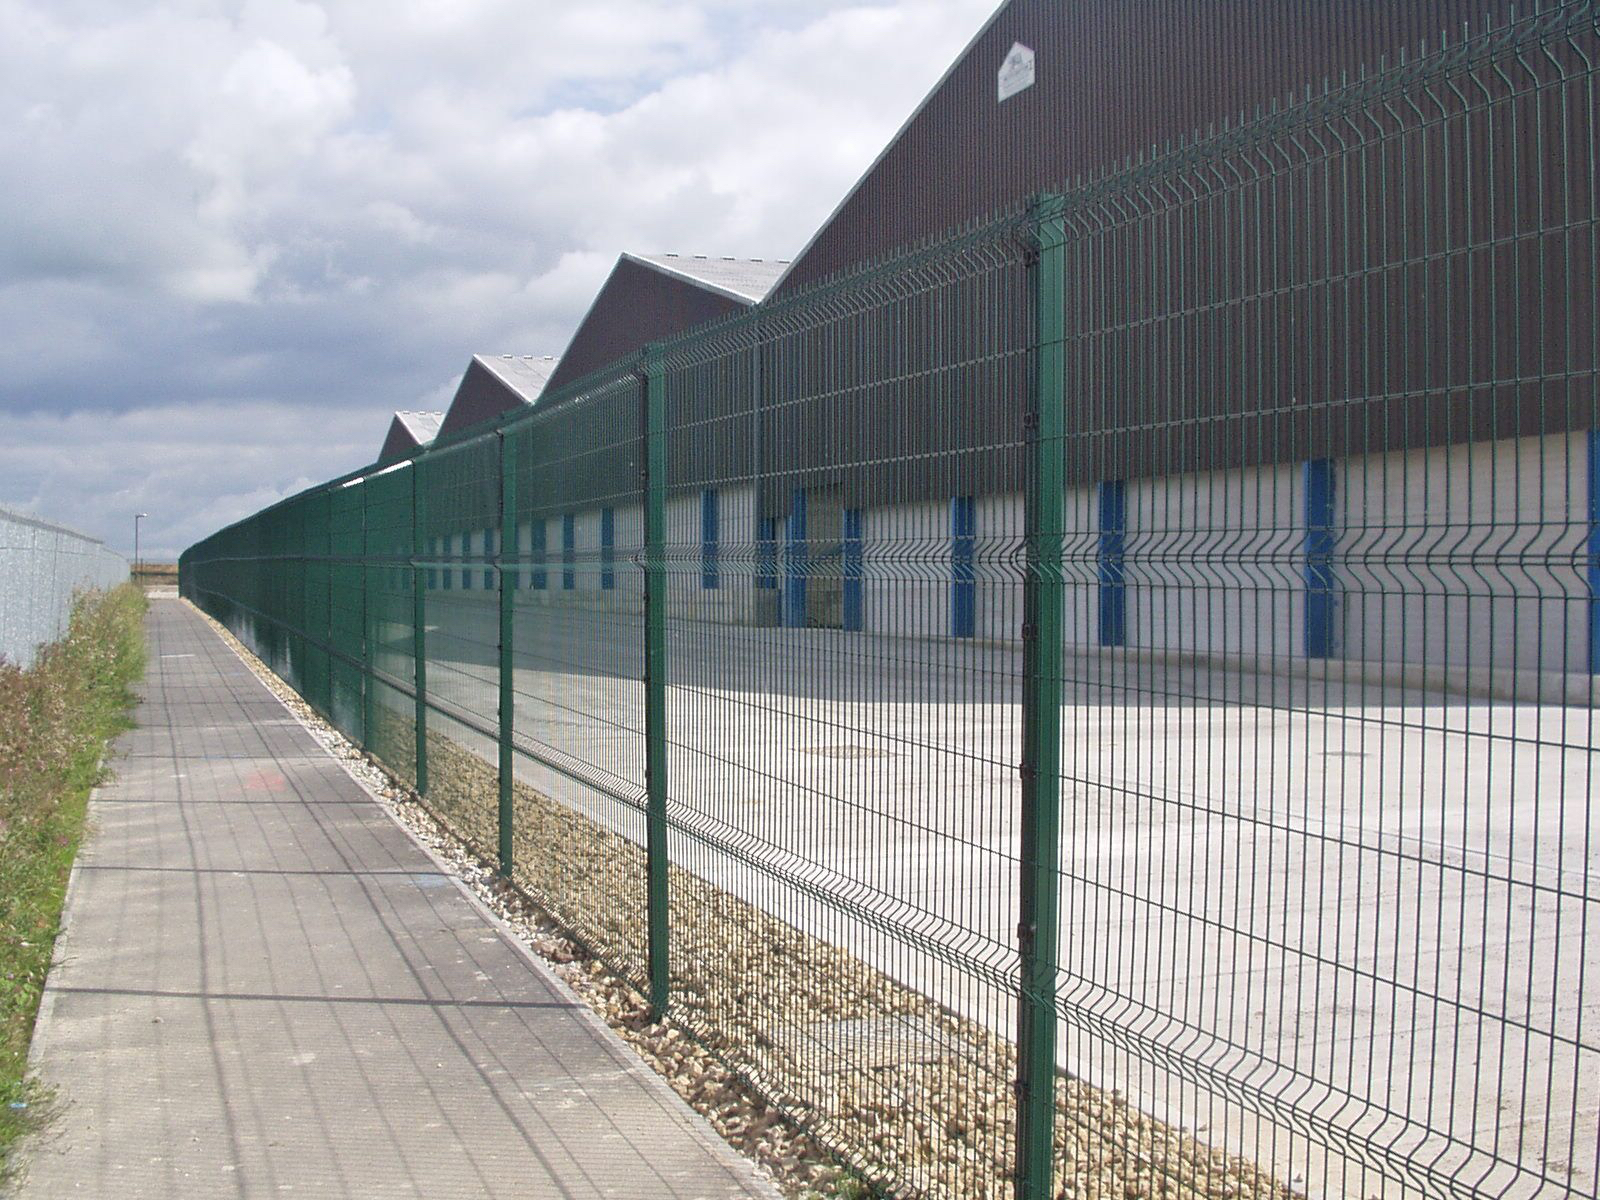 Panel Security Fencing Company